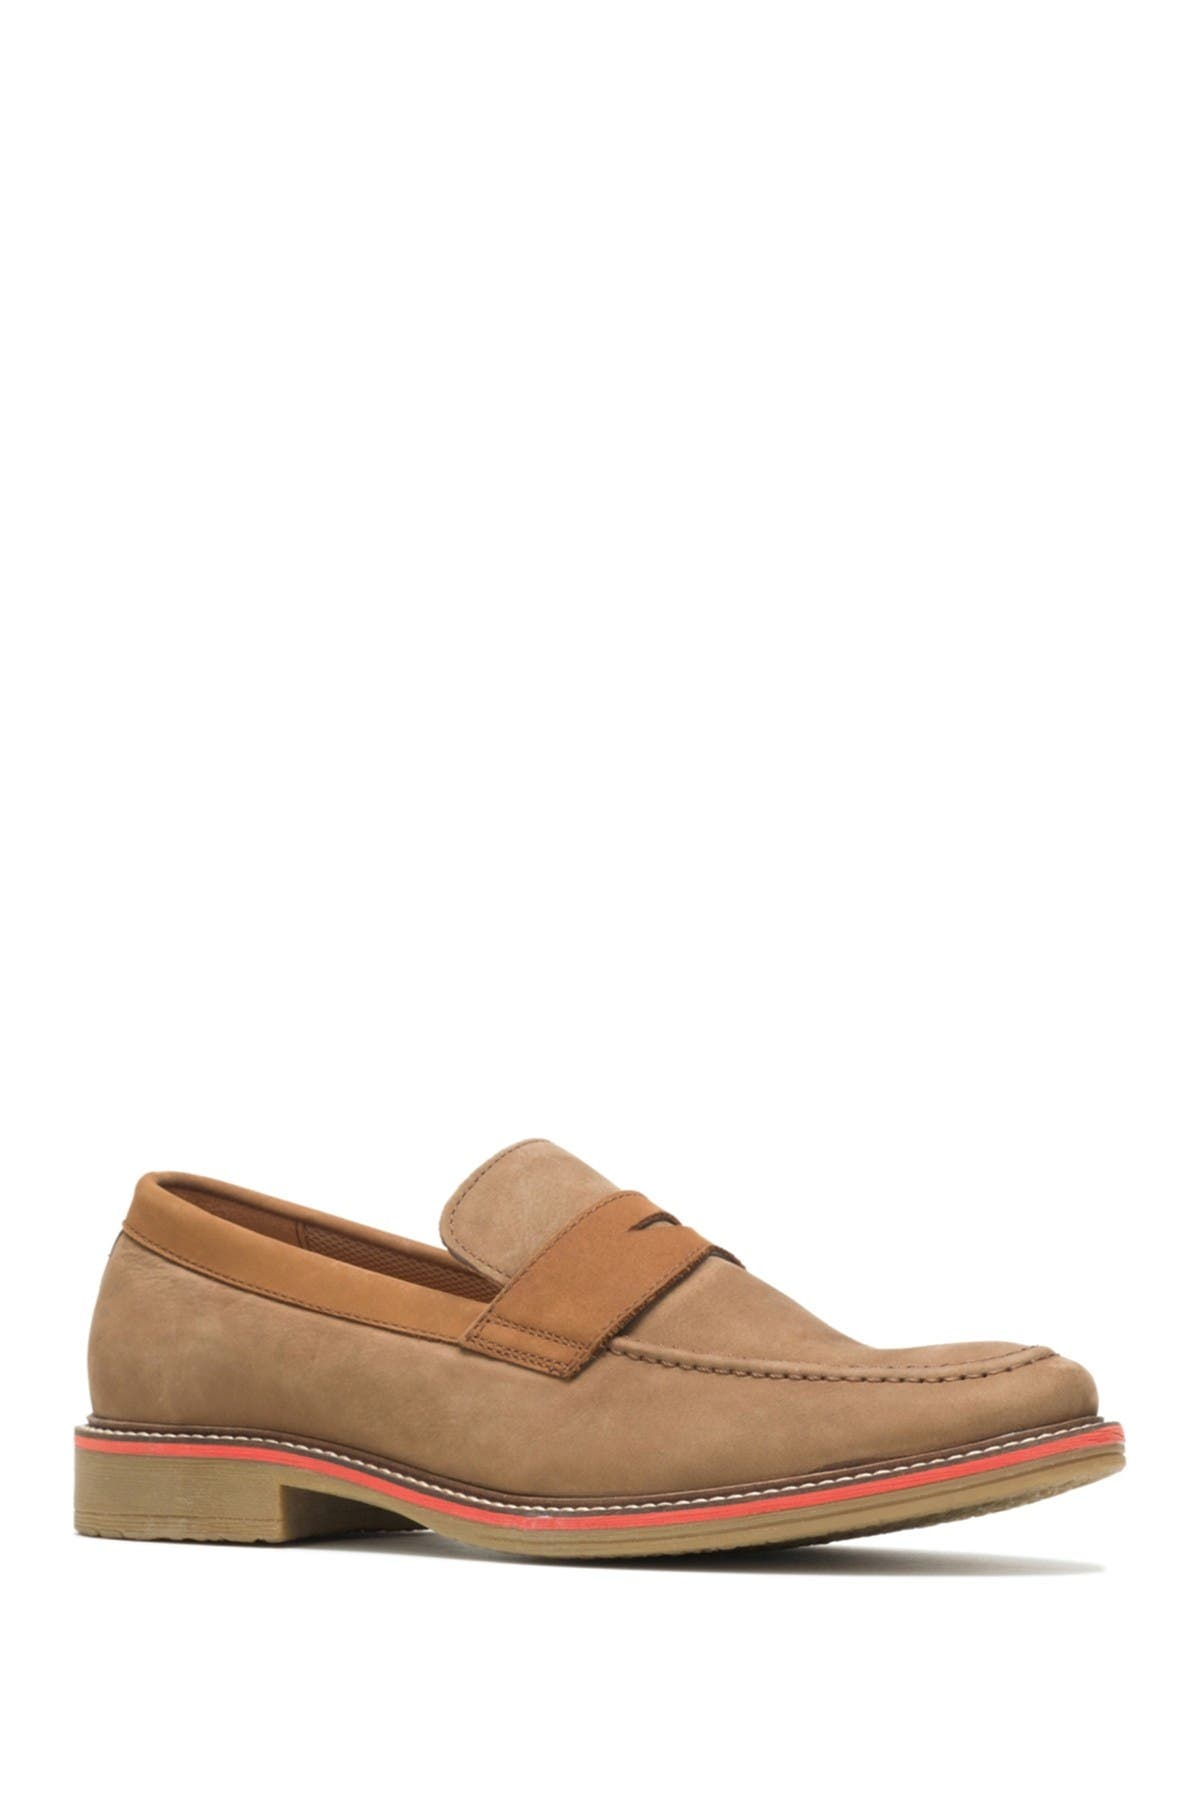 Image of Hush Puppies Giles Penny Loafer